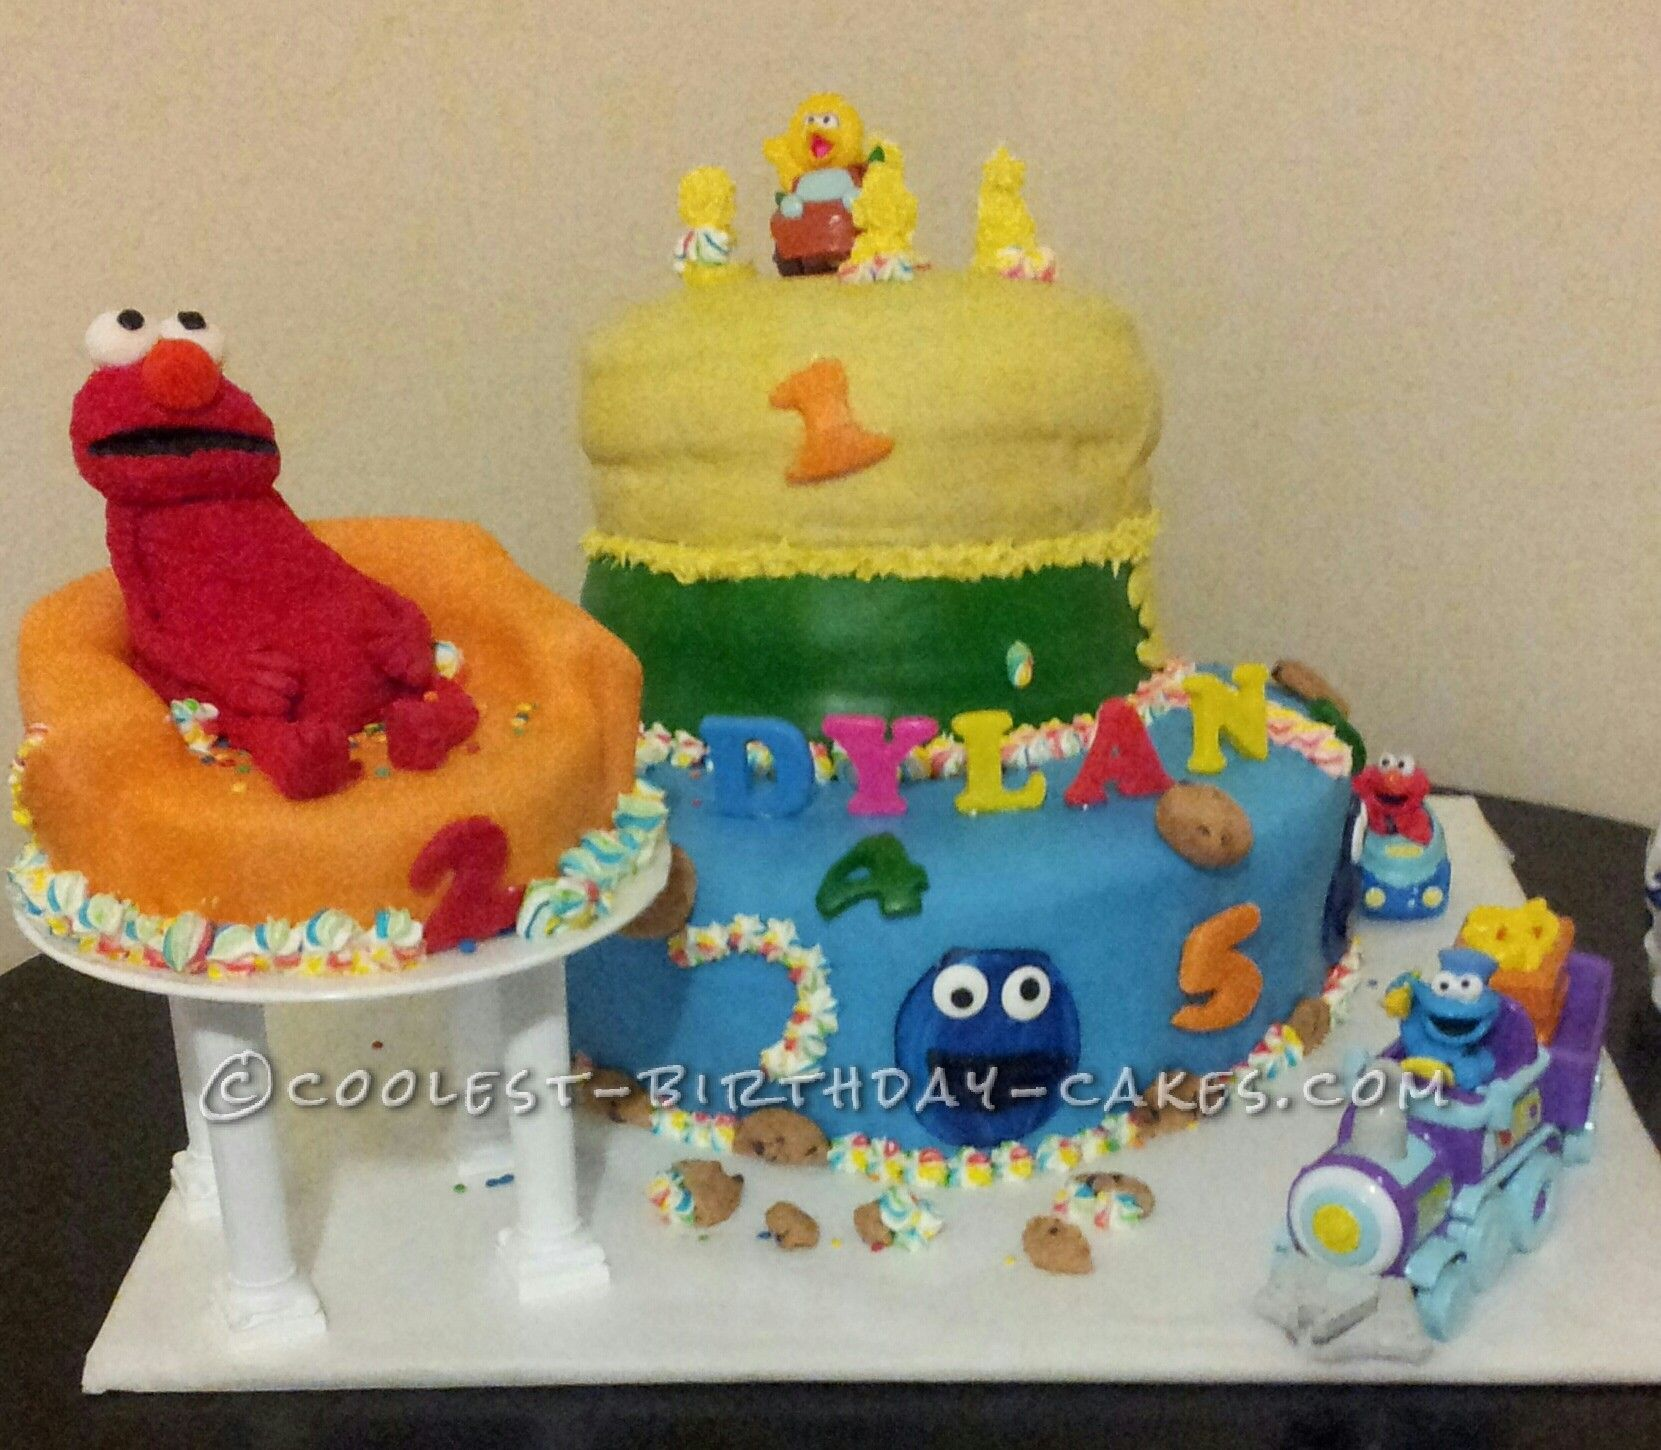 Wondrous Awesome Sesame Street Birthday Cake For A 2 Year Old Boy 2 Year Funny Birthday Cards Online Hendilapandamsfinfo